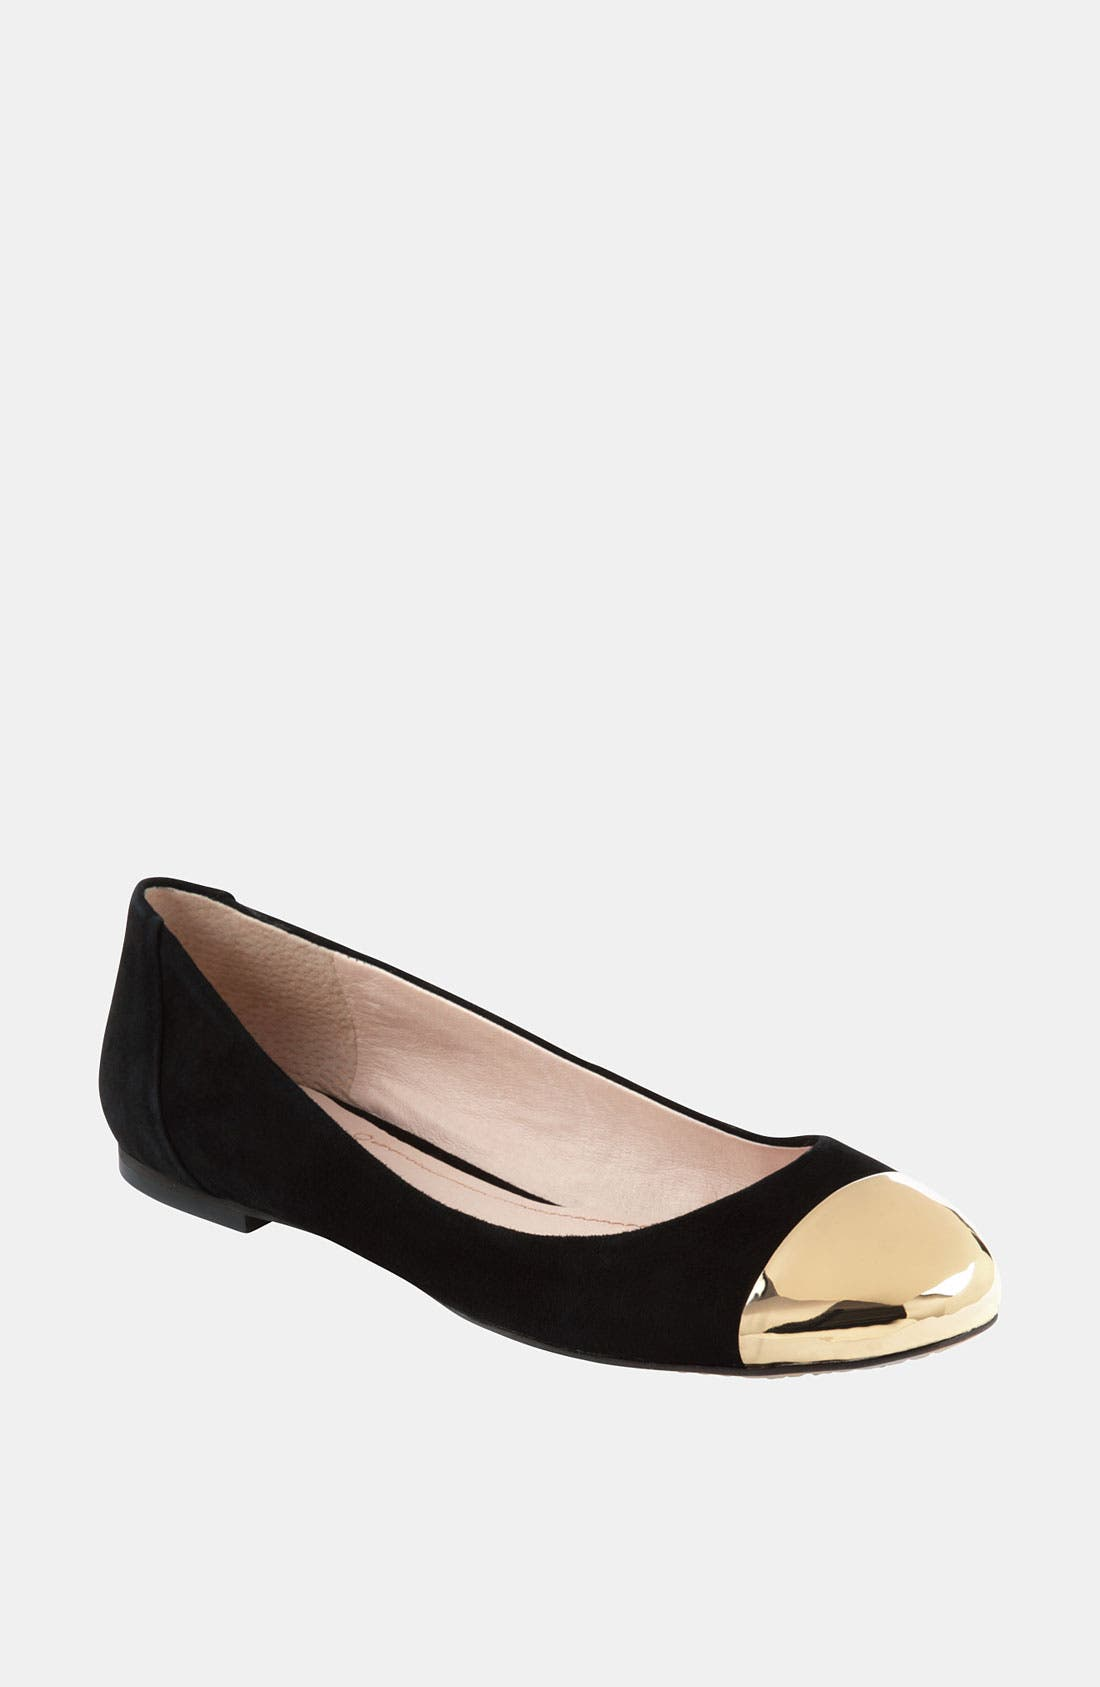 Alternate Image 1 Selected - Vince Camuto 'Olita 2' Flat